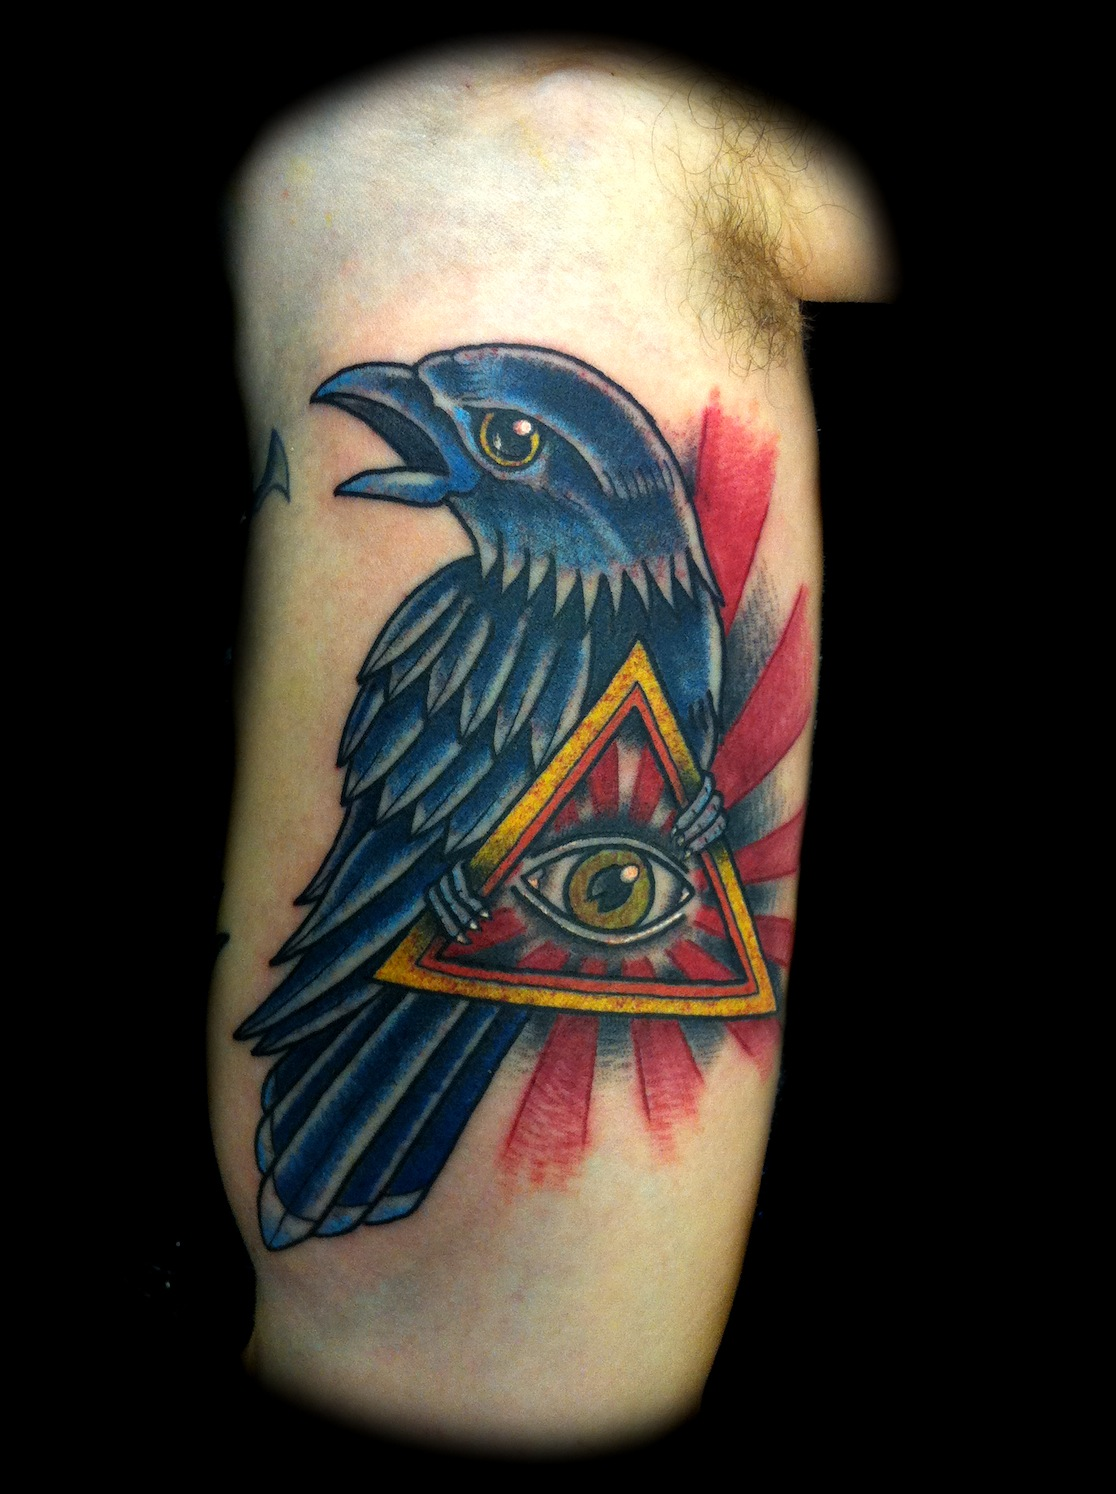 Illuminati Tattoos Designs Nice illuminati eye tattoo